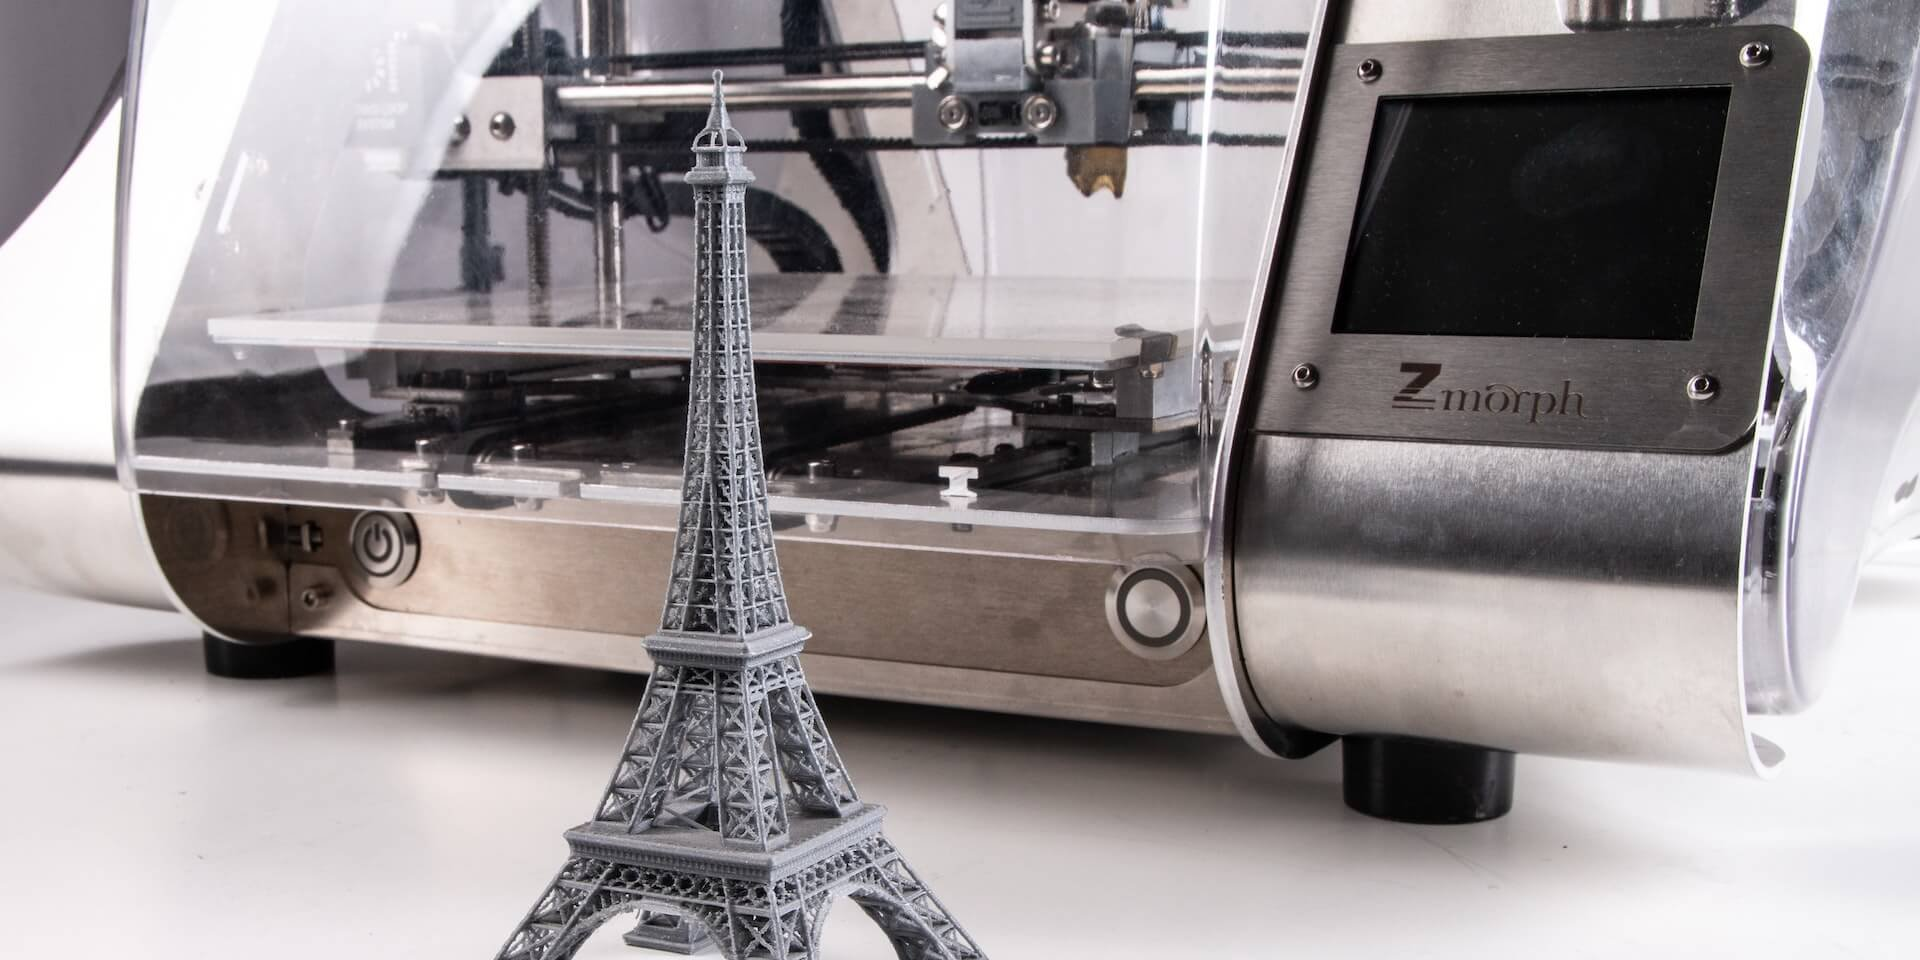 rpa to erp what 3d printing is for manufacturing